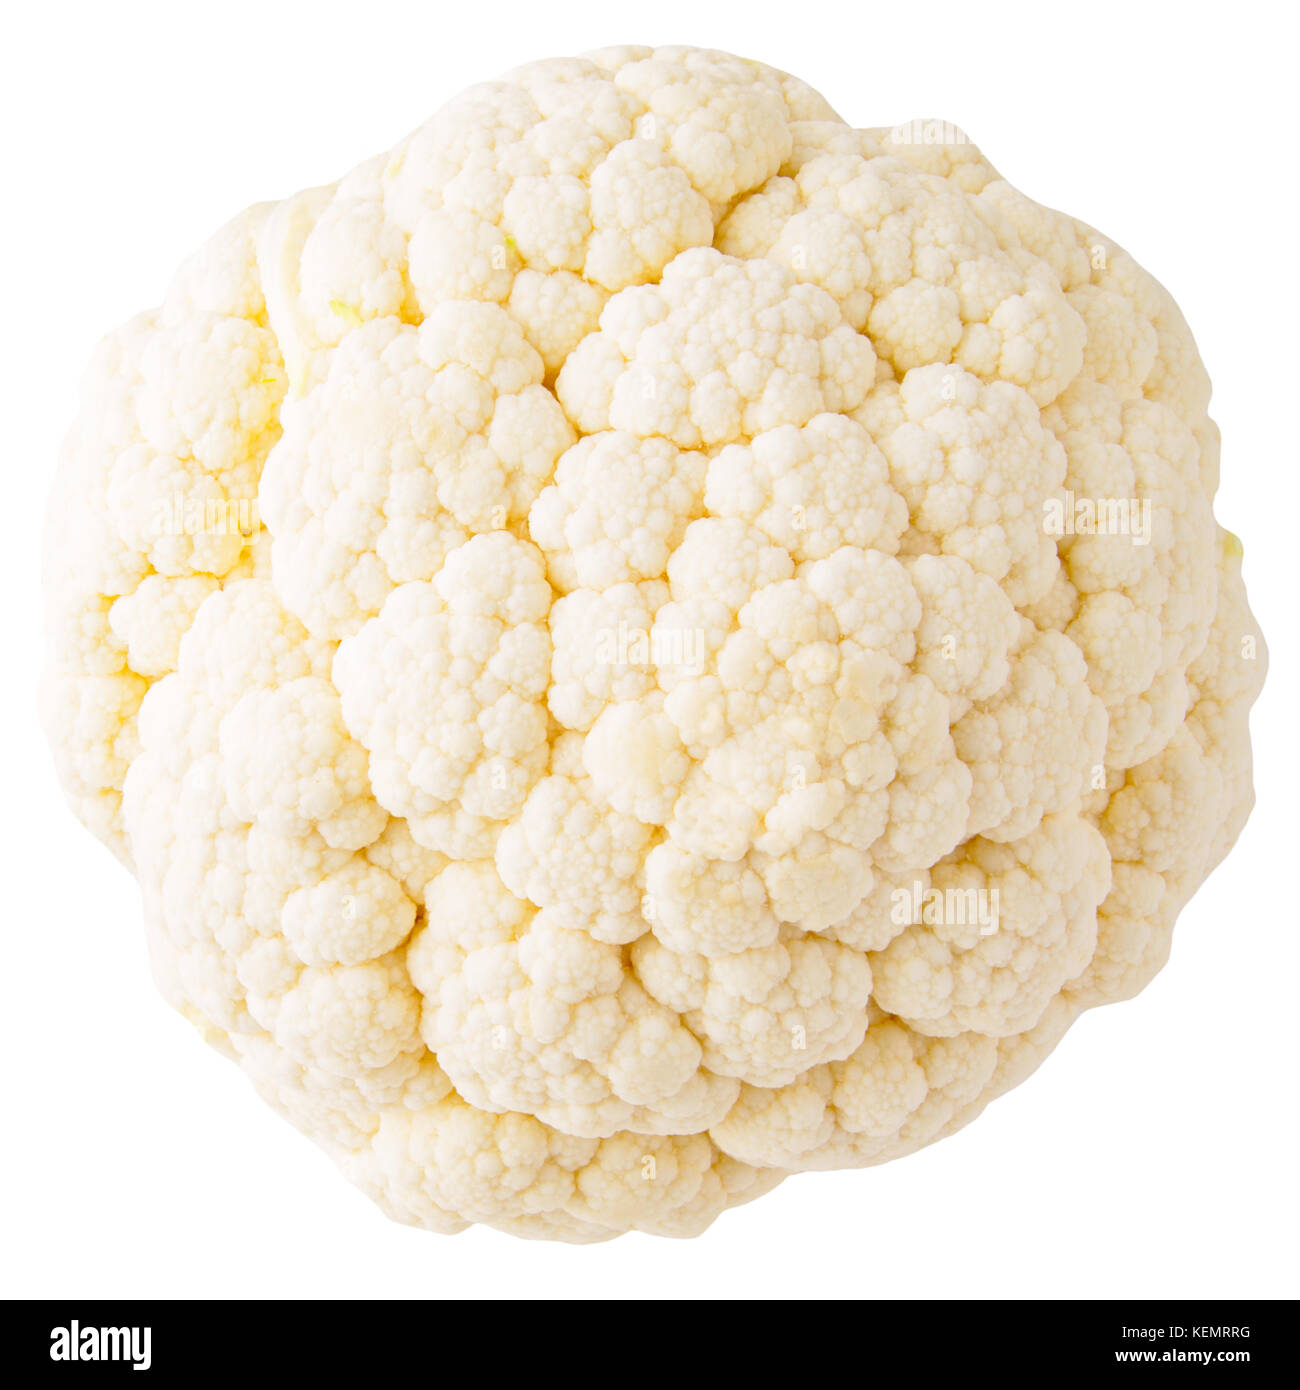 Isolated vegetables. Cauliflower isolated on white background with clipping path as a package design element. - Stock Image